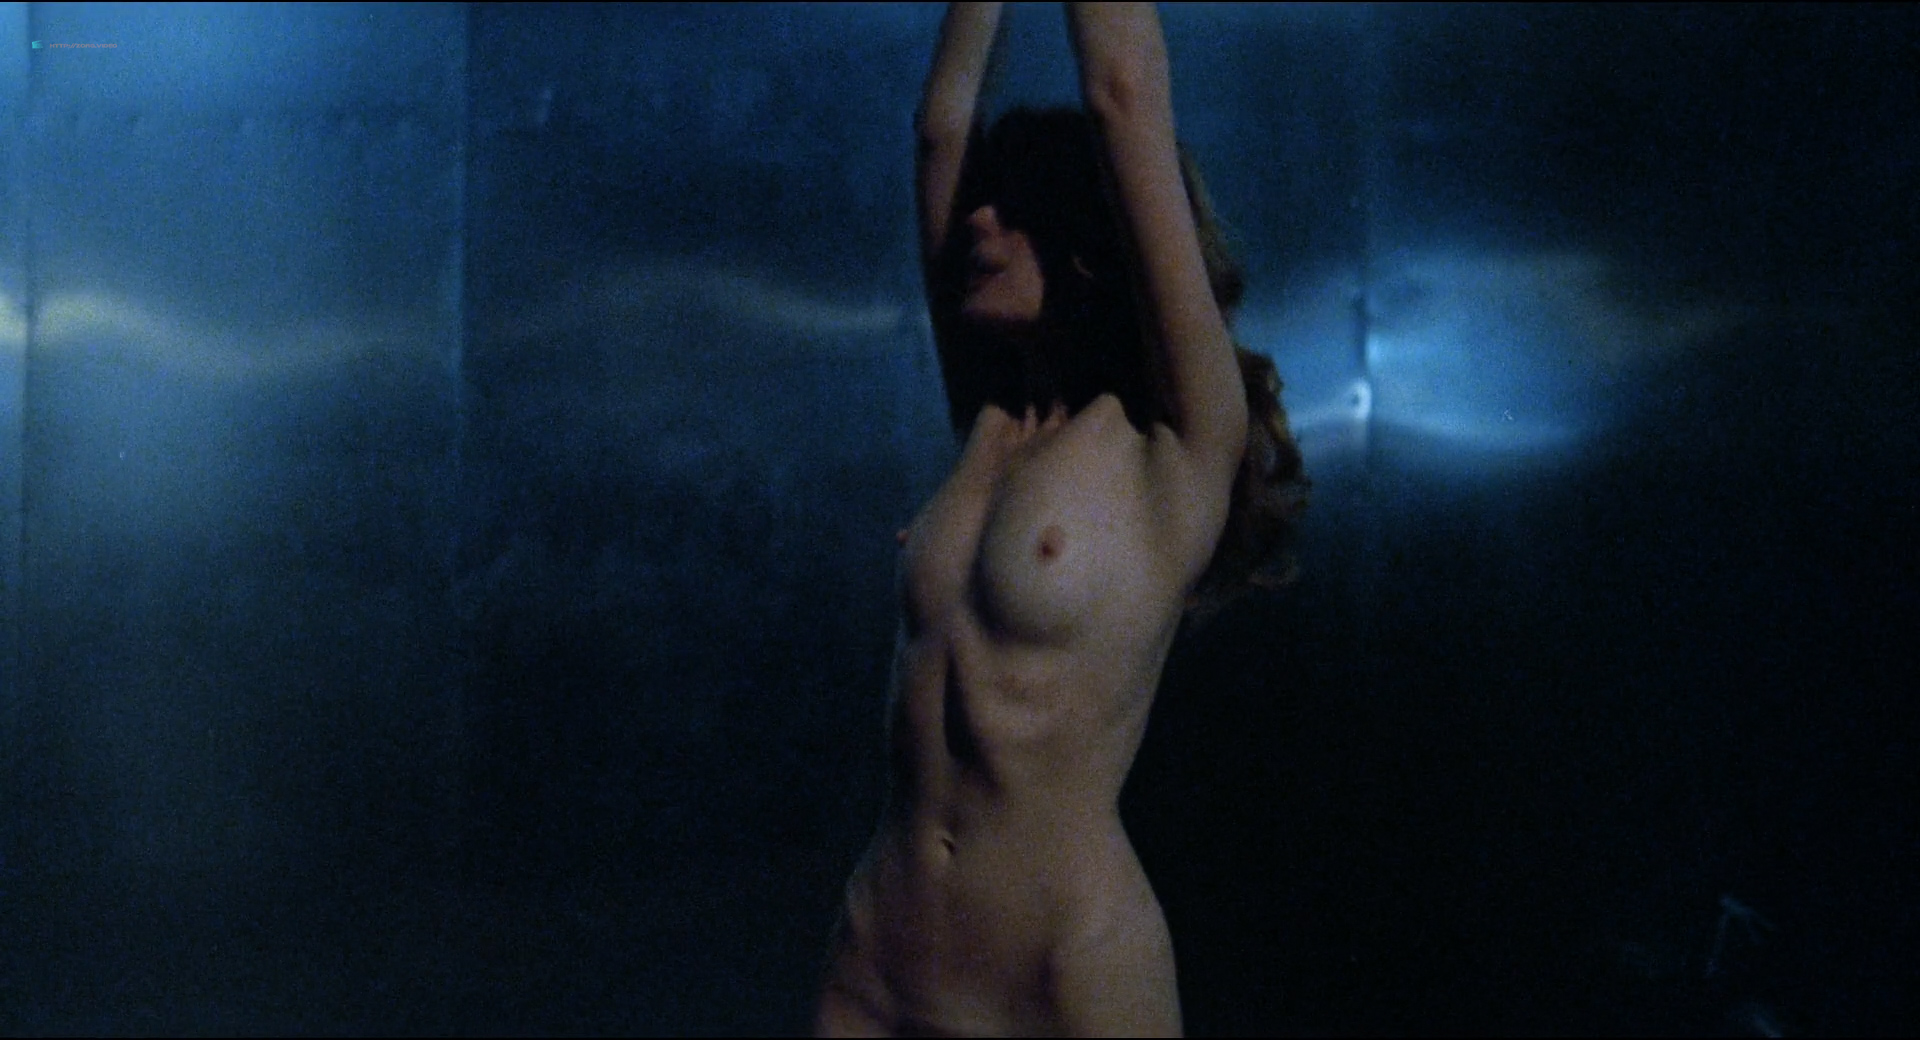 Johanna Brushay nude full frontal - Don't Go In The House (US 1980) HD 1080p (4)